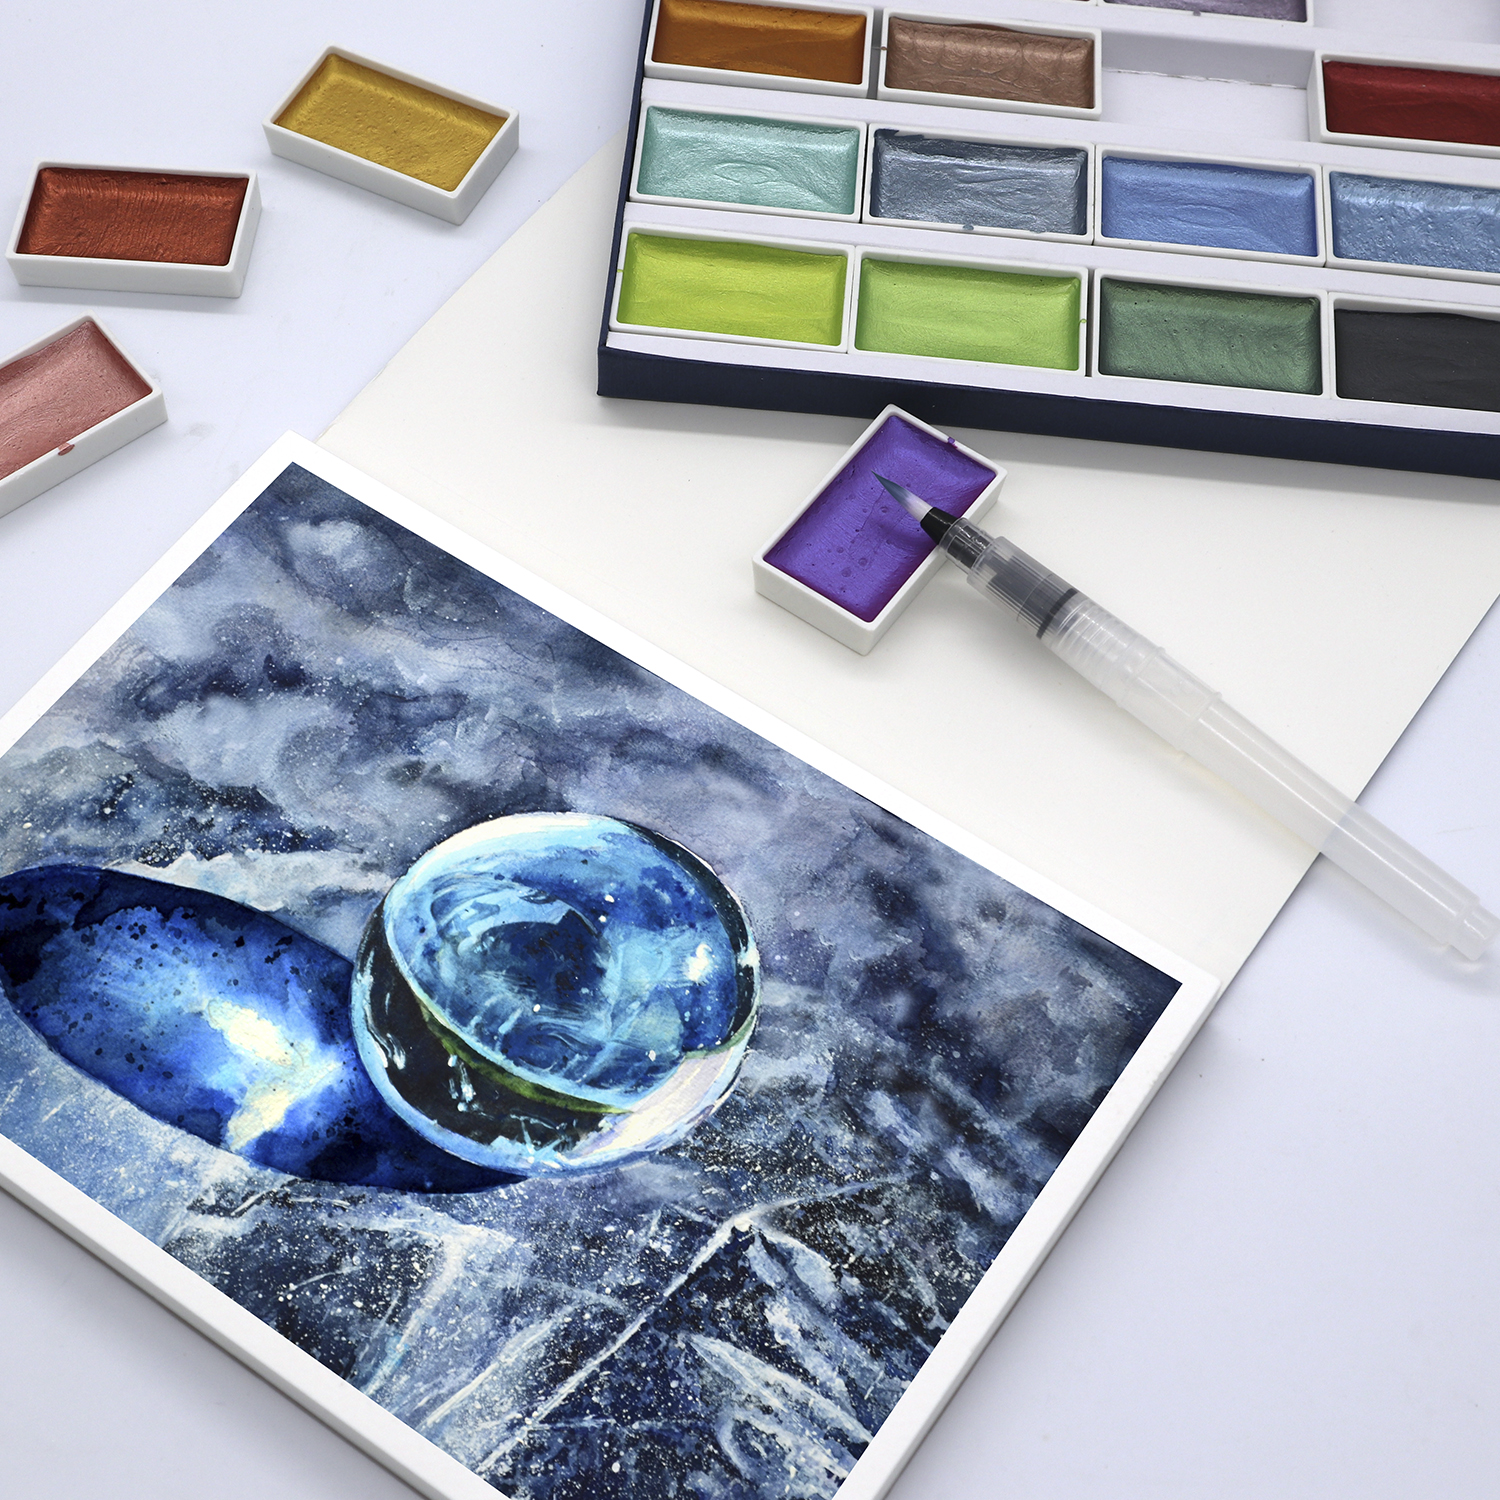 Image 5 - SeamiArt 24Color Semi Dry Glitter Metallic Watercolor Paint Gift Box Set Artist Watercolor Pearl Pigment for Drawing SuppliesWater Color   -